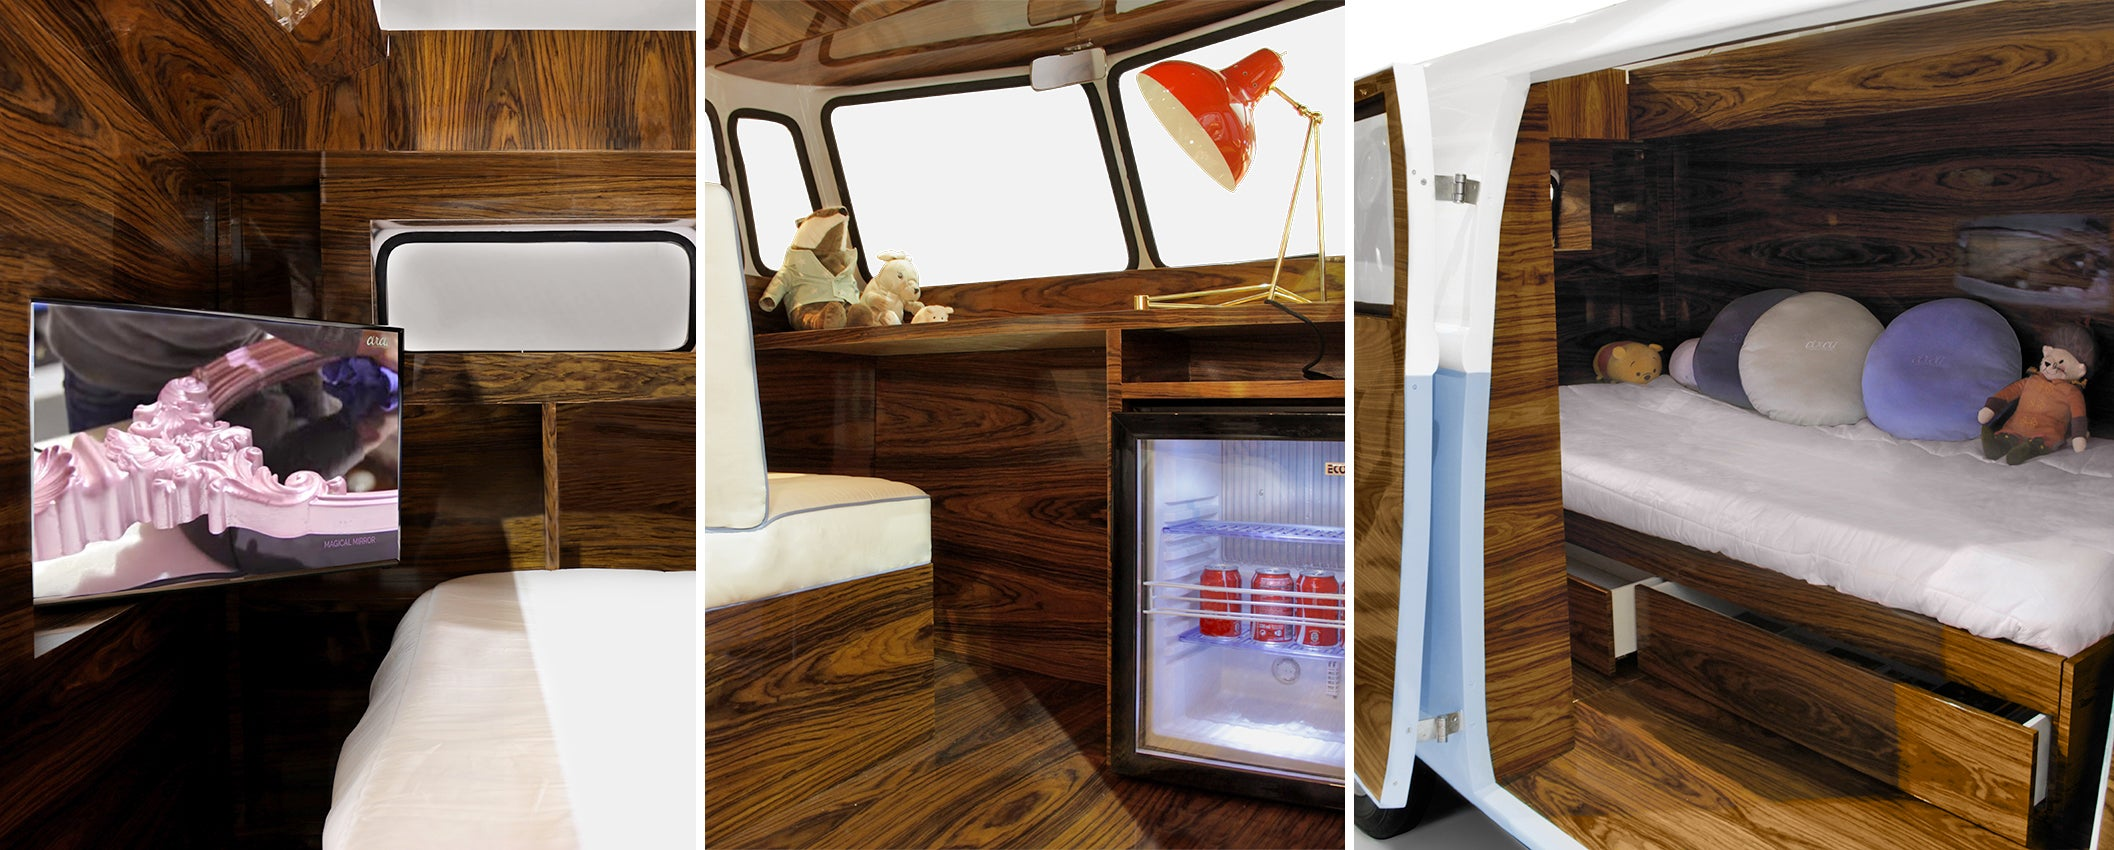 No One Is Going To Use This Vw Kombi Bed For Sleeping Gizmodo